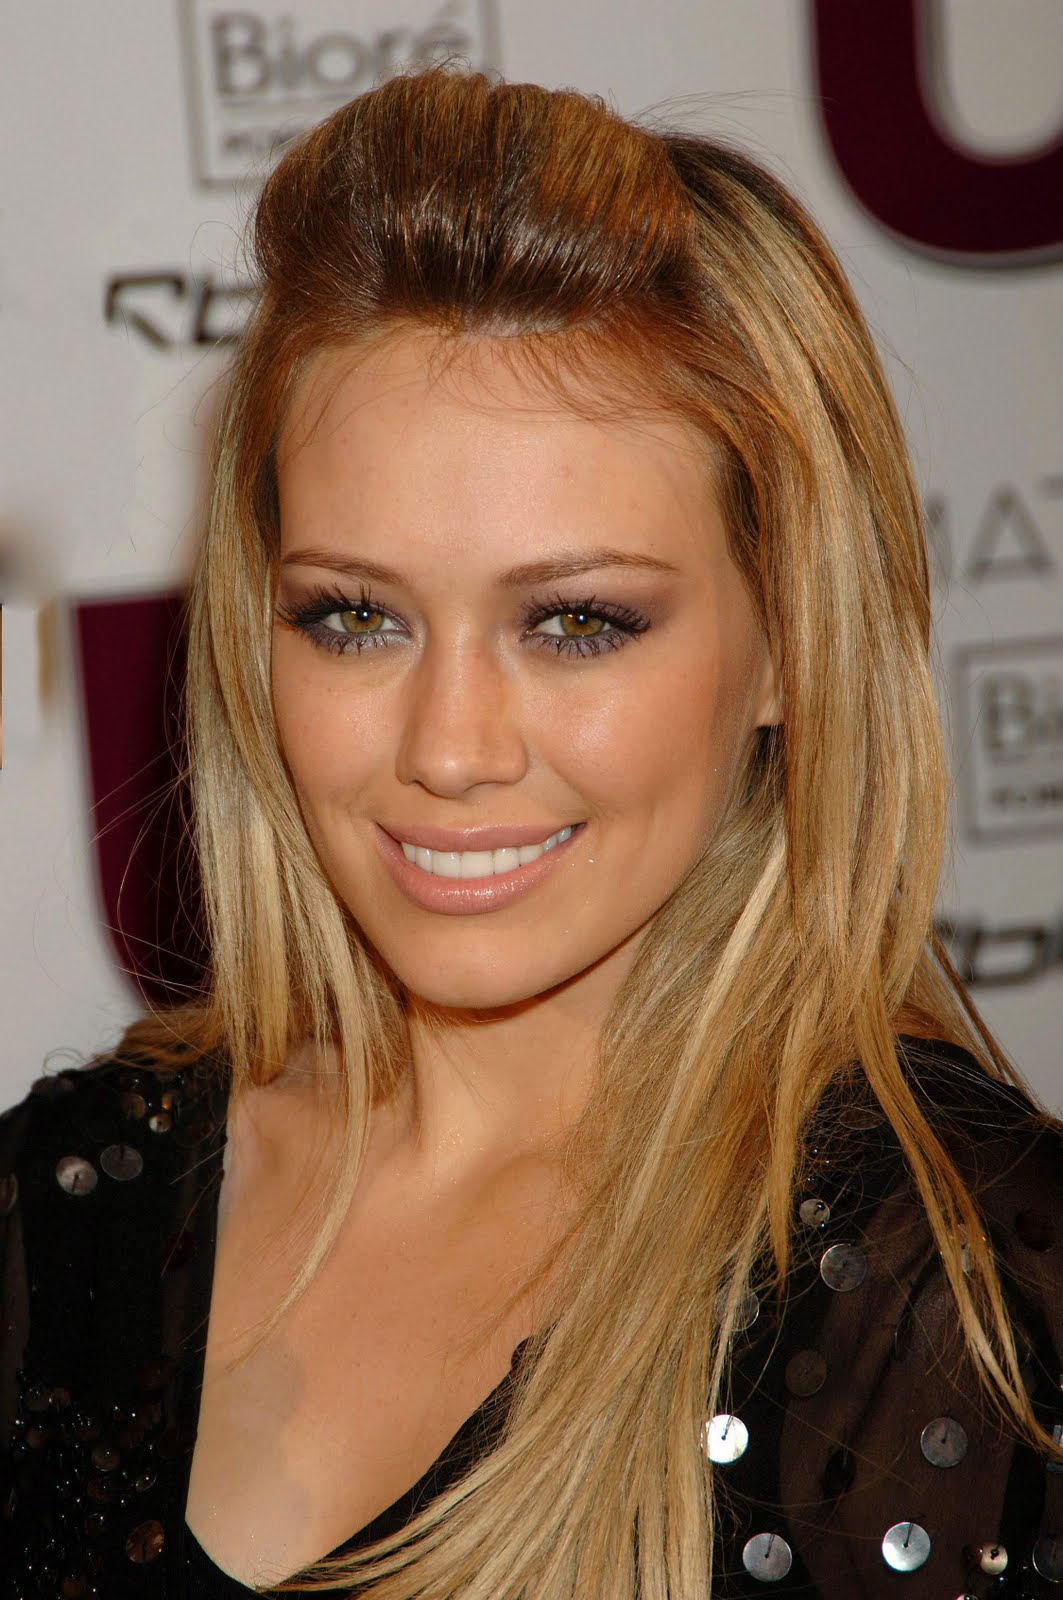 hilary duff makeup tutorial - photo #33